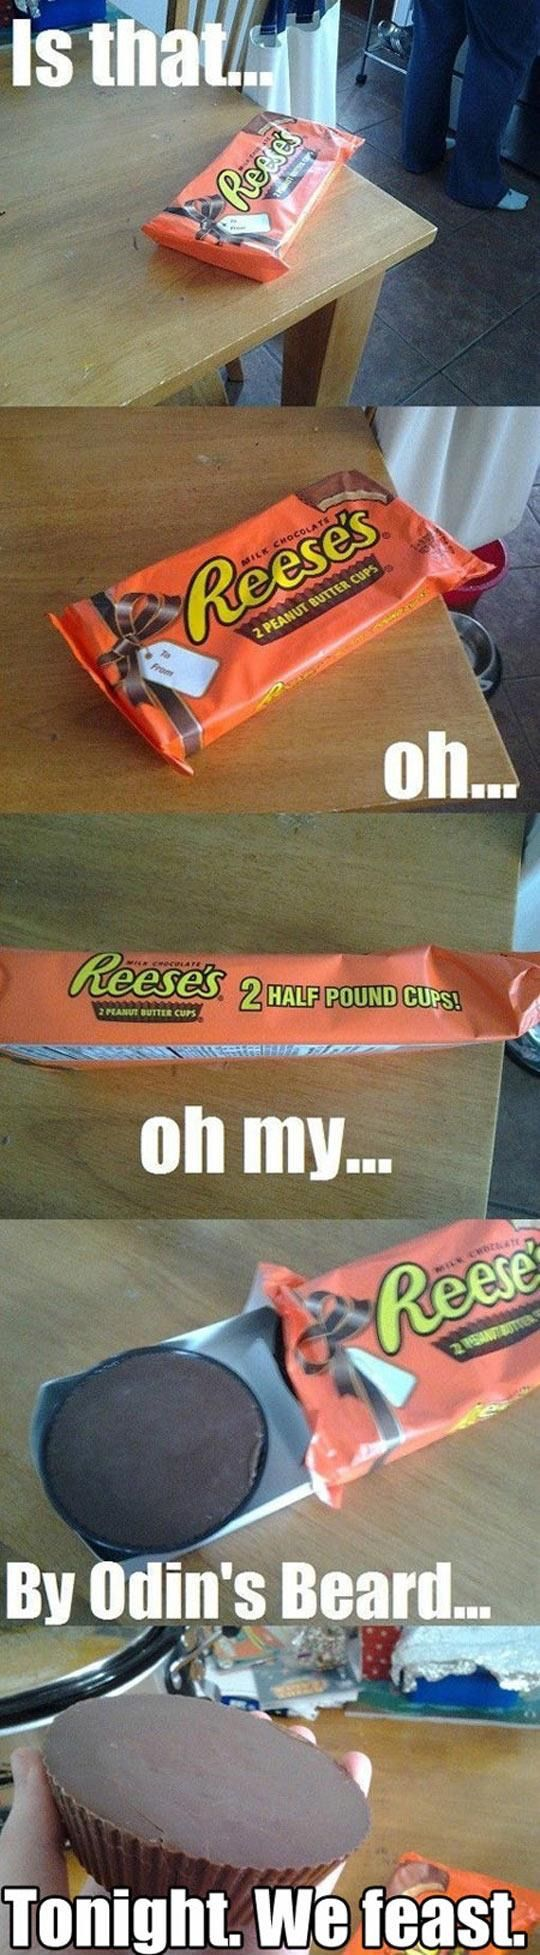 My friend and I bought one of these for another friend. The next day, we found out she was allergic to peanut butter (not severely, but severely enough to keep the candy).